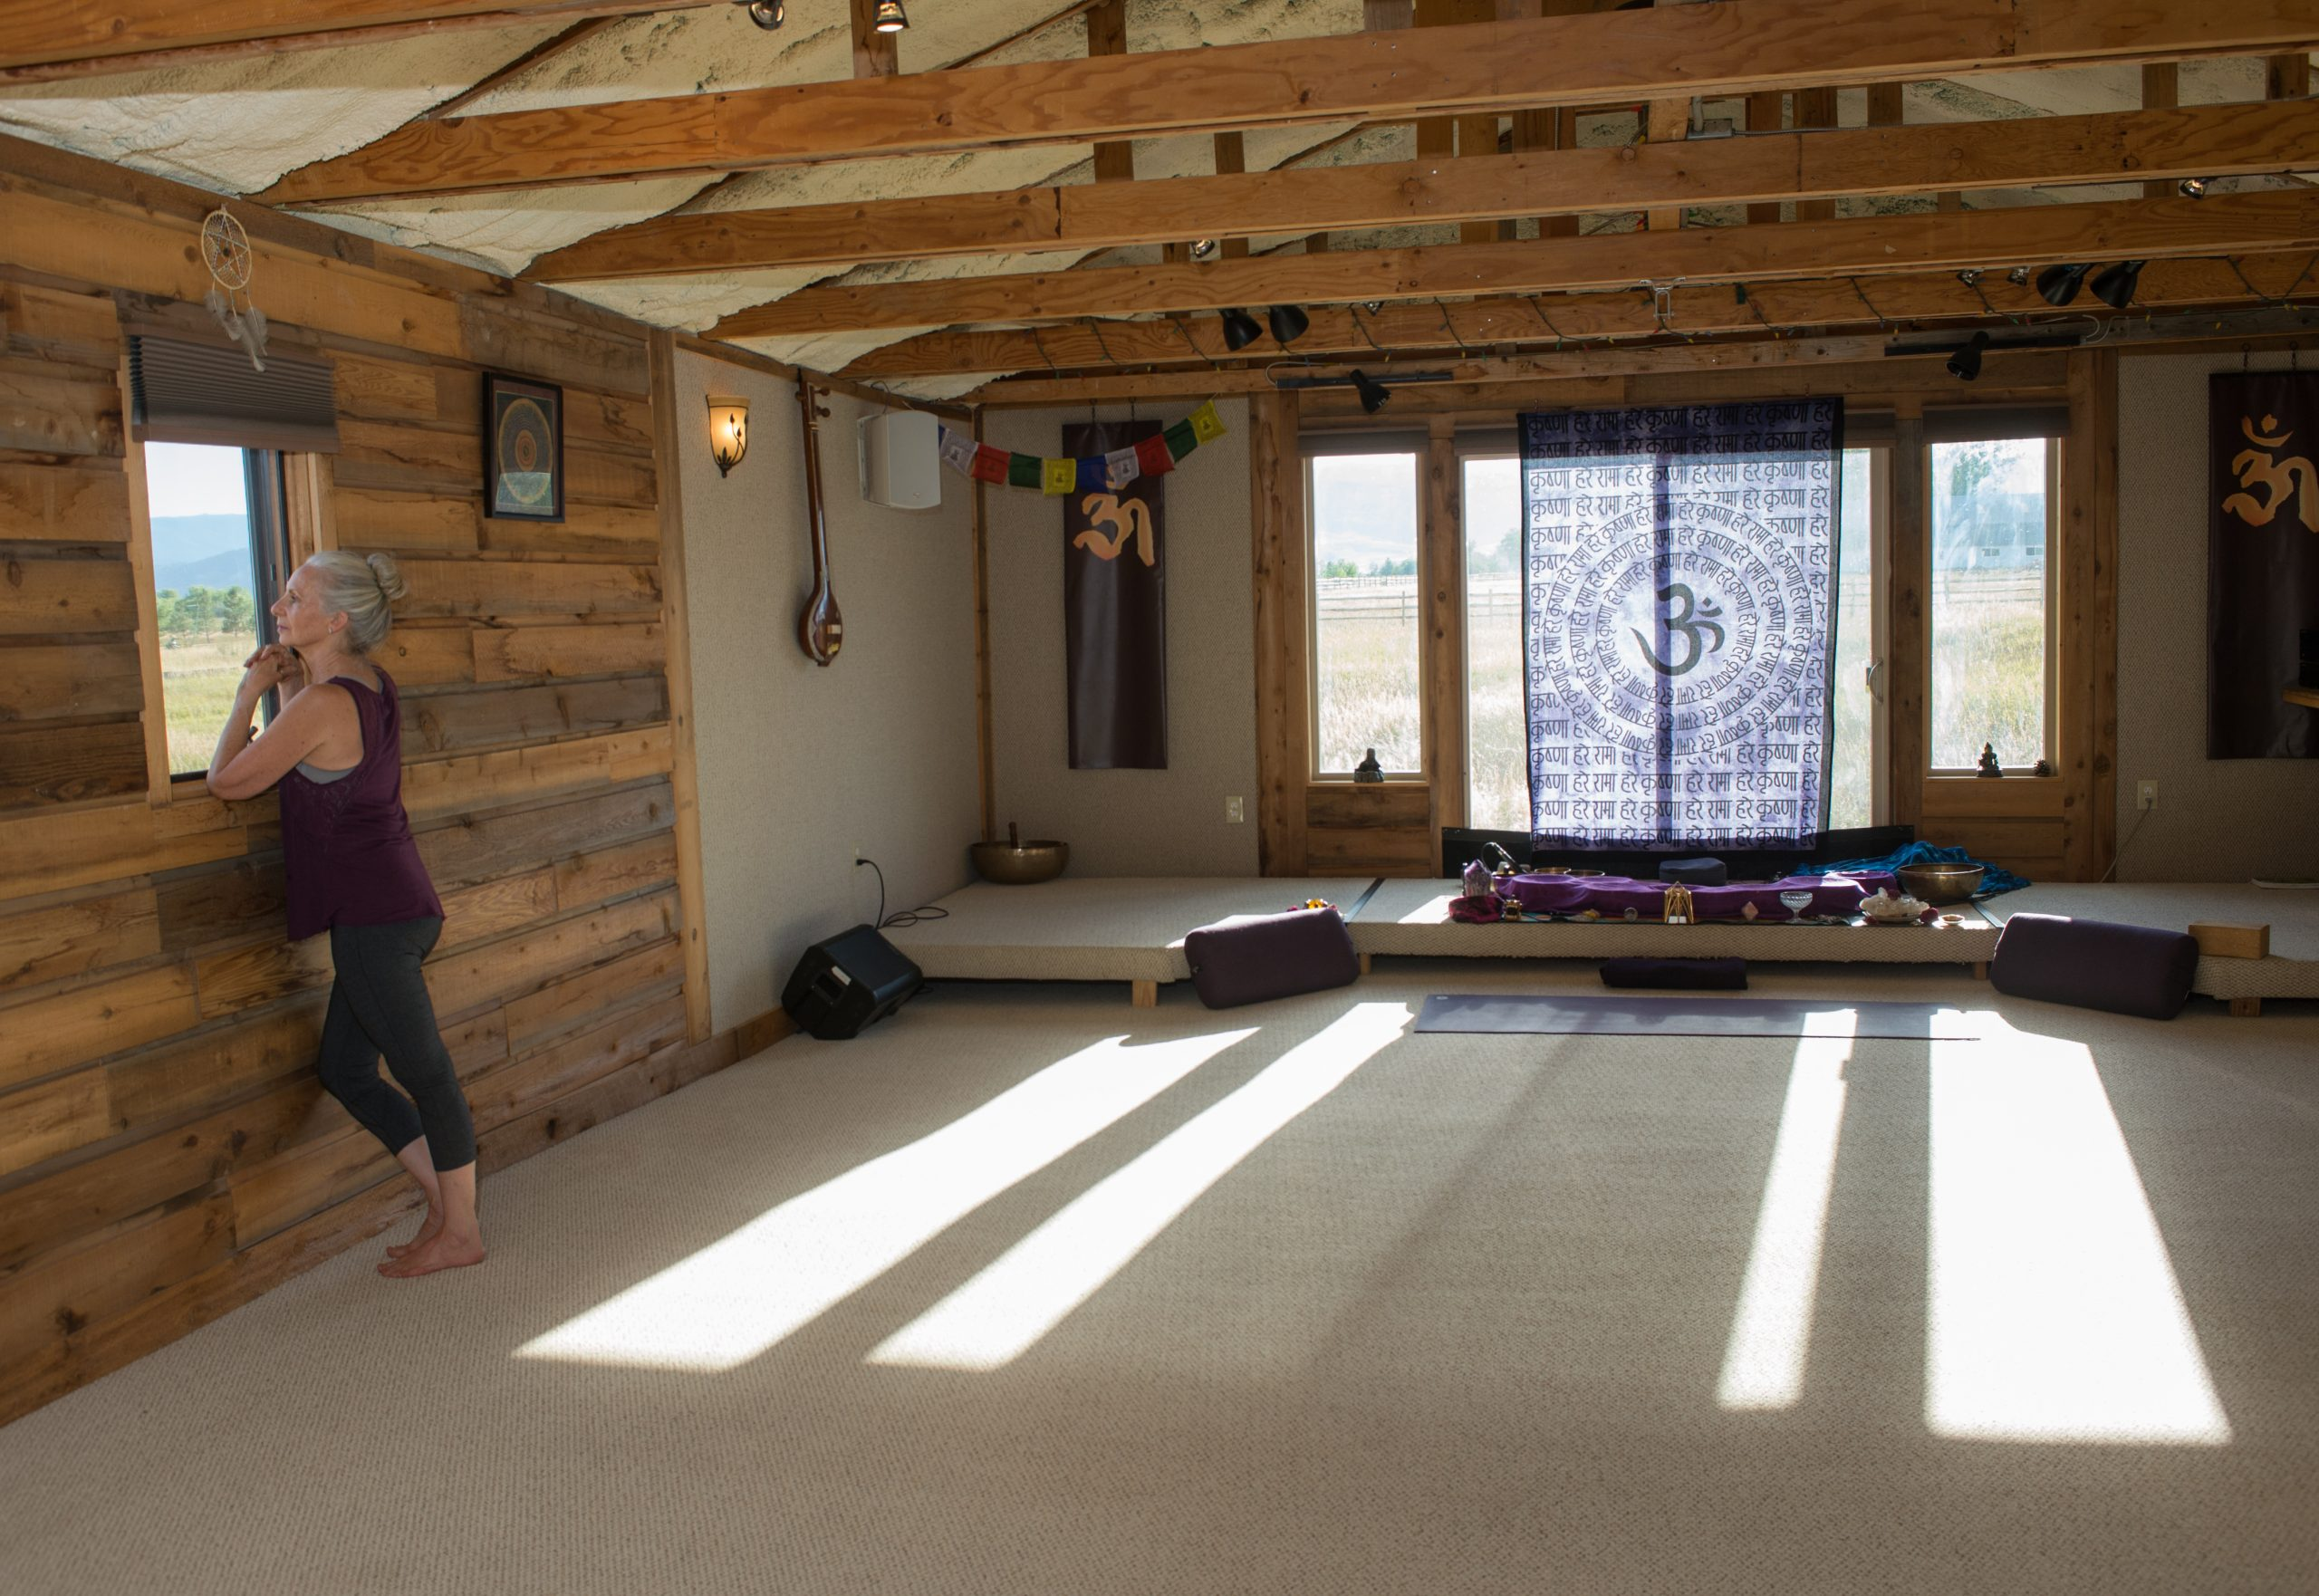 The yoga space inside.